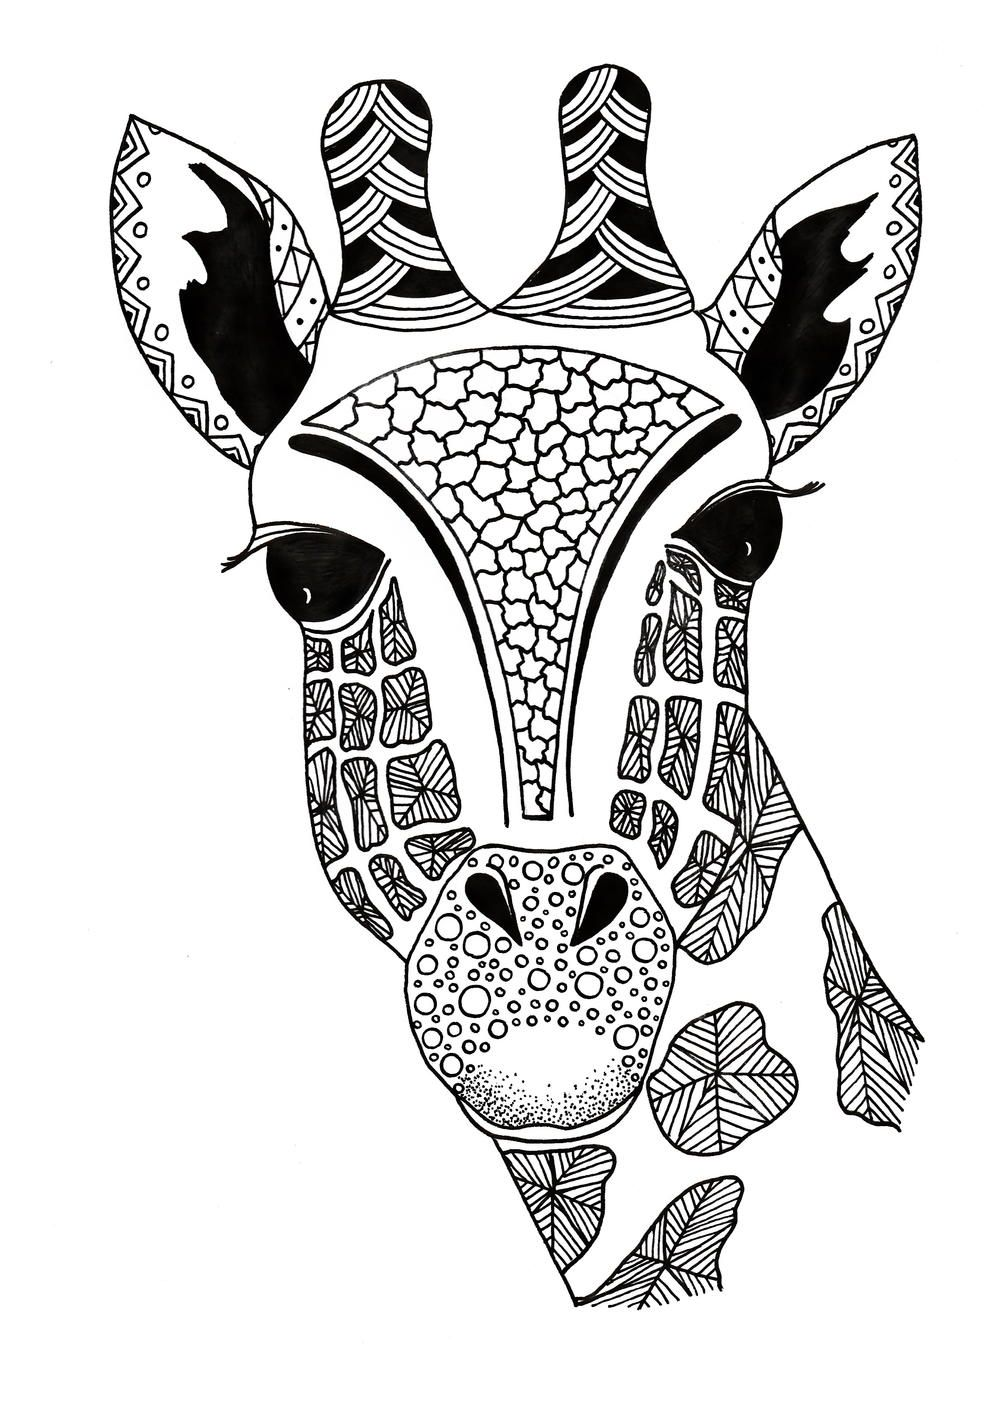 This FREE giraffe coloring page is filled with intricate